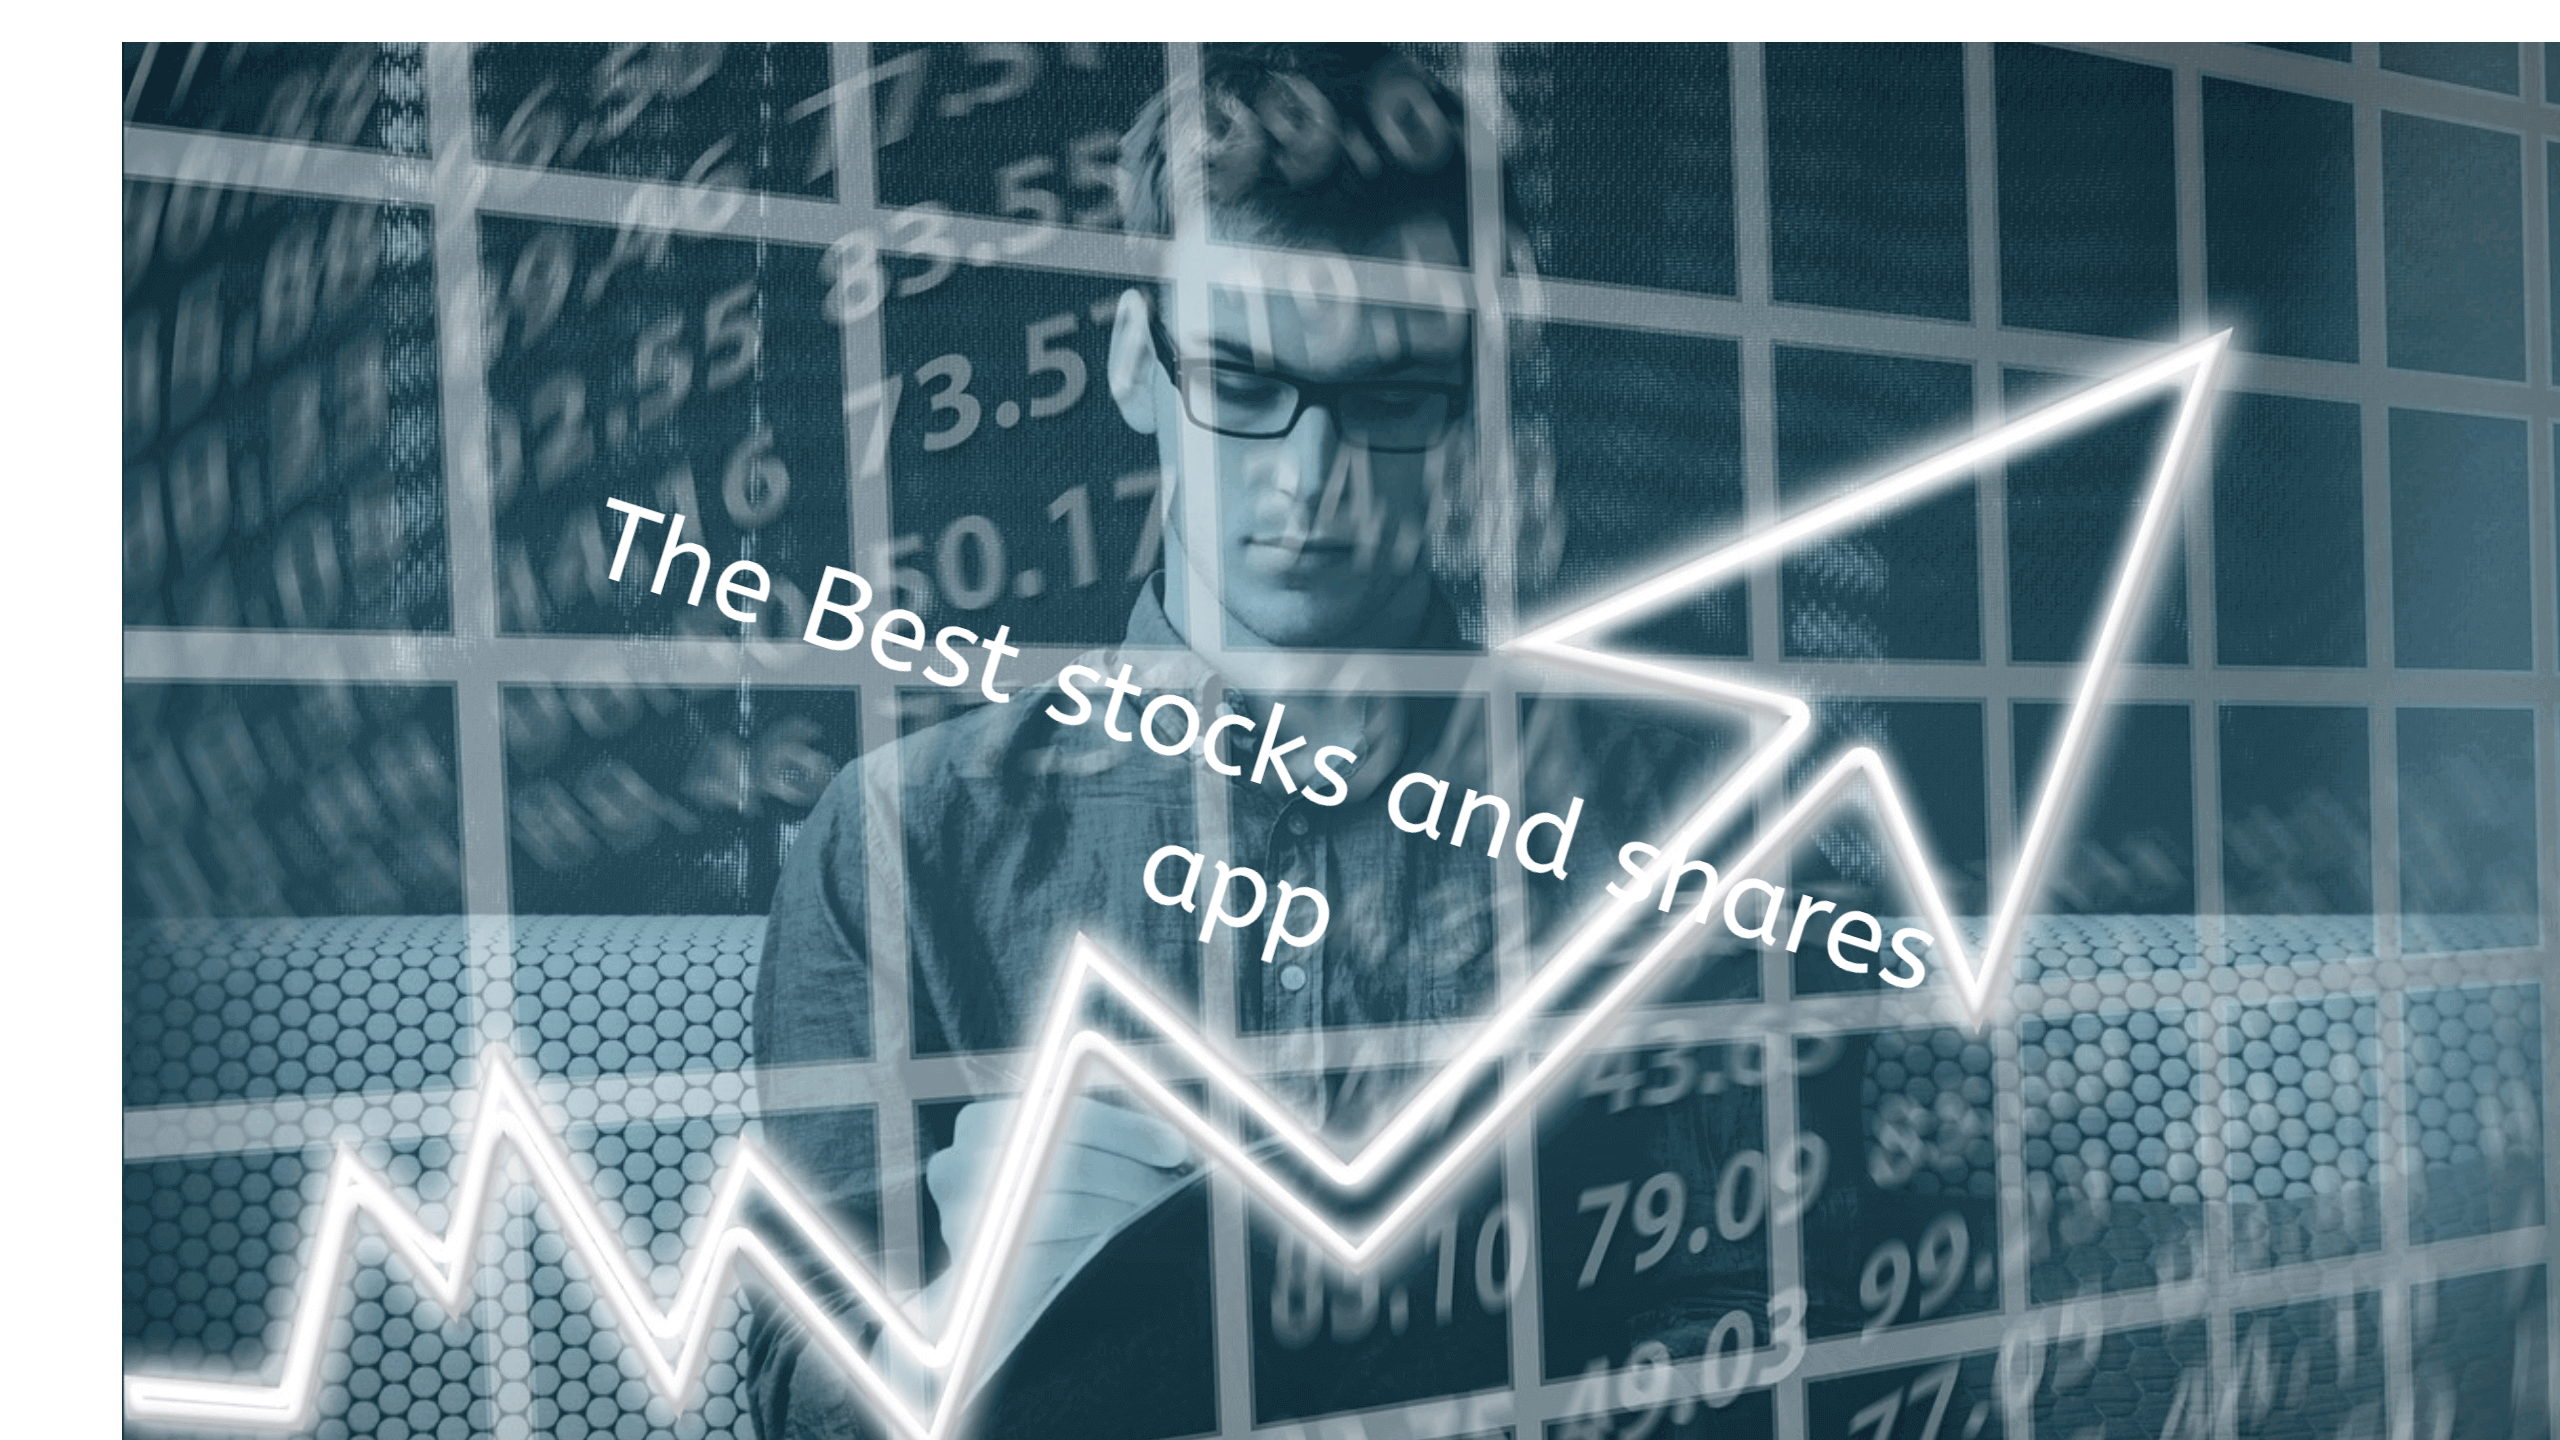 The Best stocks and shares app imges